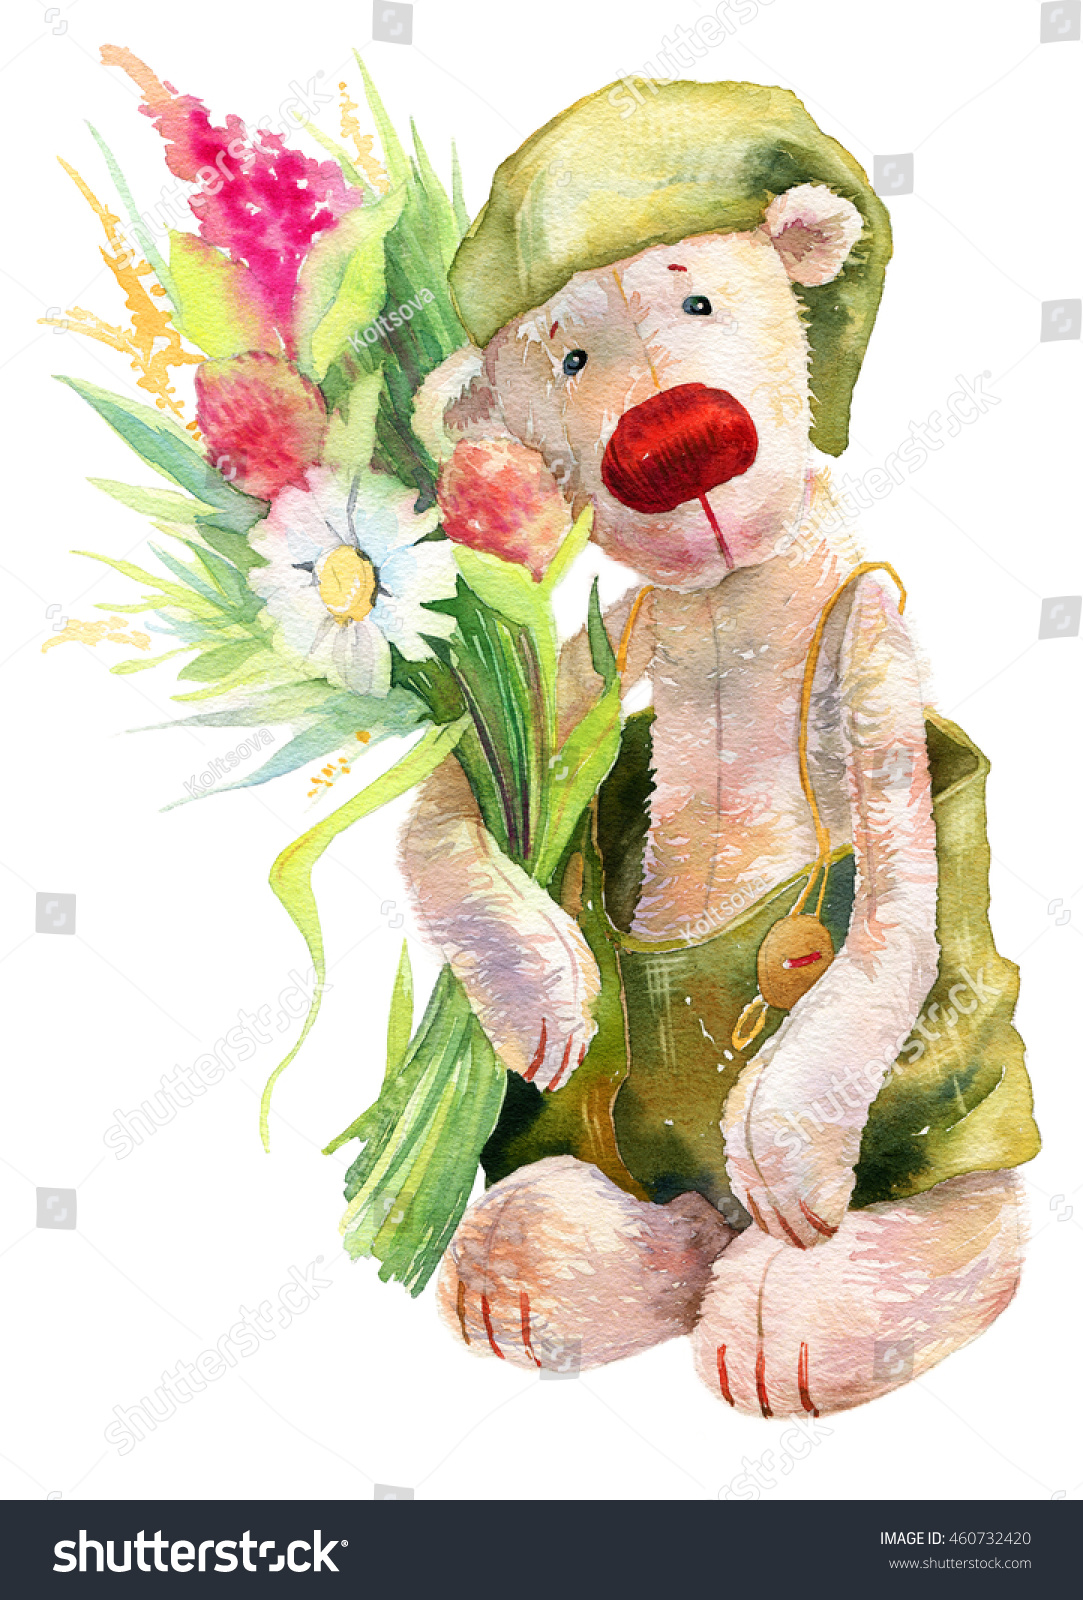 Cute Watercolor Teddy Bear Flowers Kid Stock Illustration 460732420